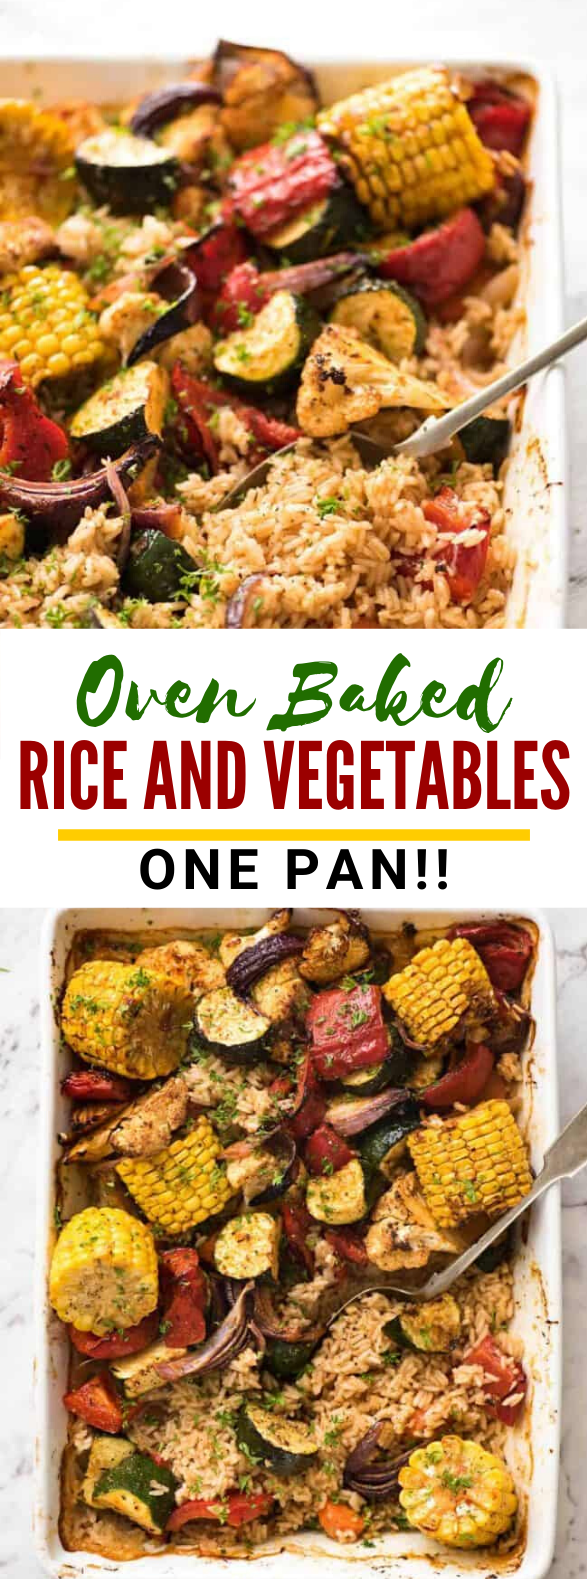 Oven Baked Rice and Vegetables (ONE PAN!!) #vegetarian #dinner